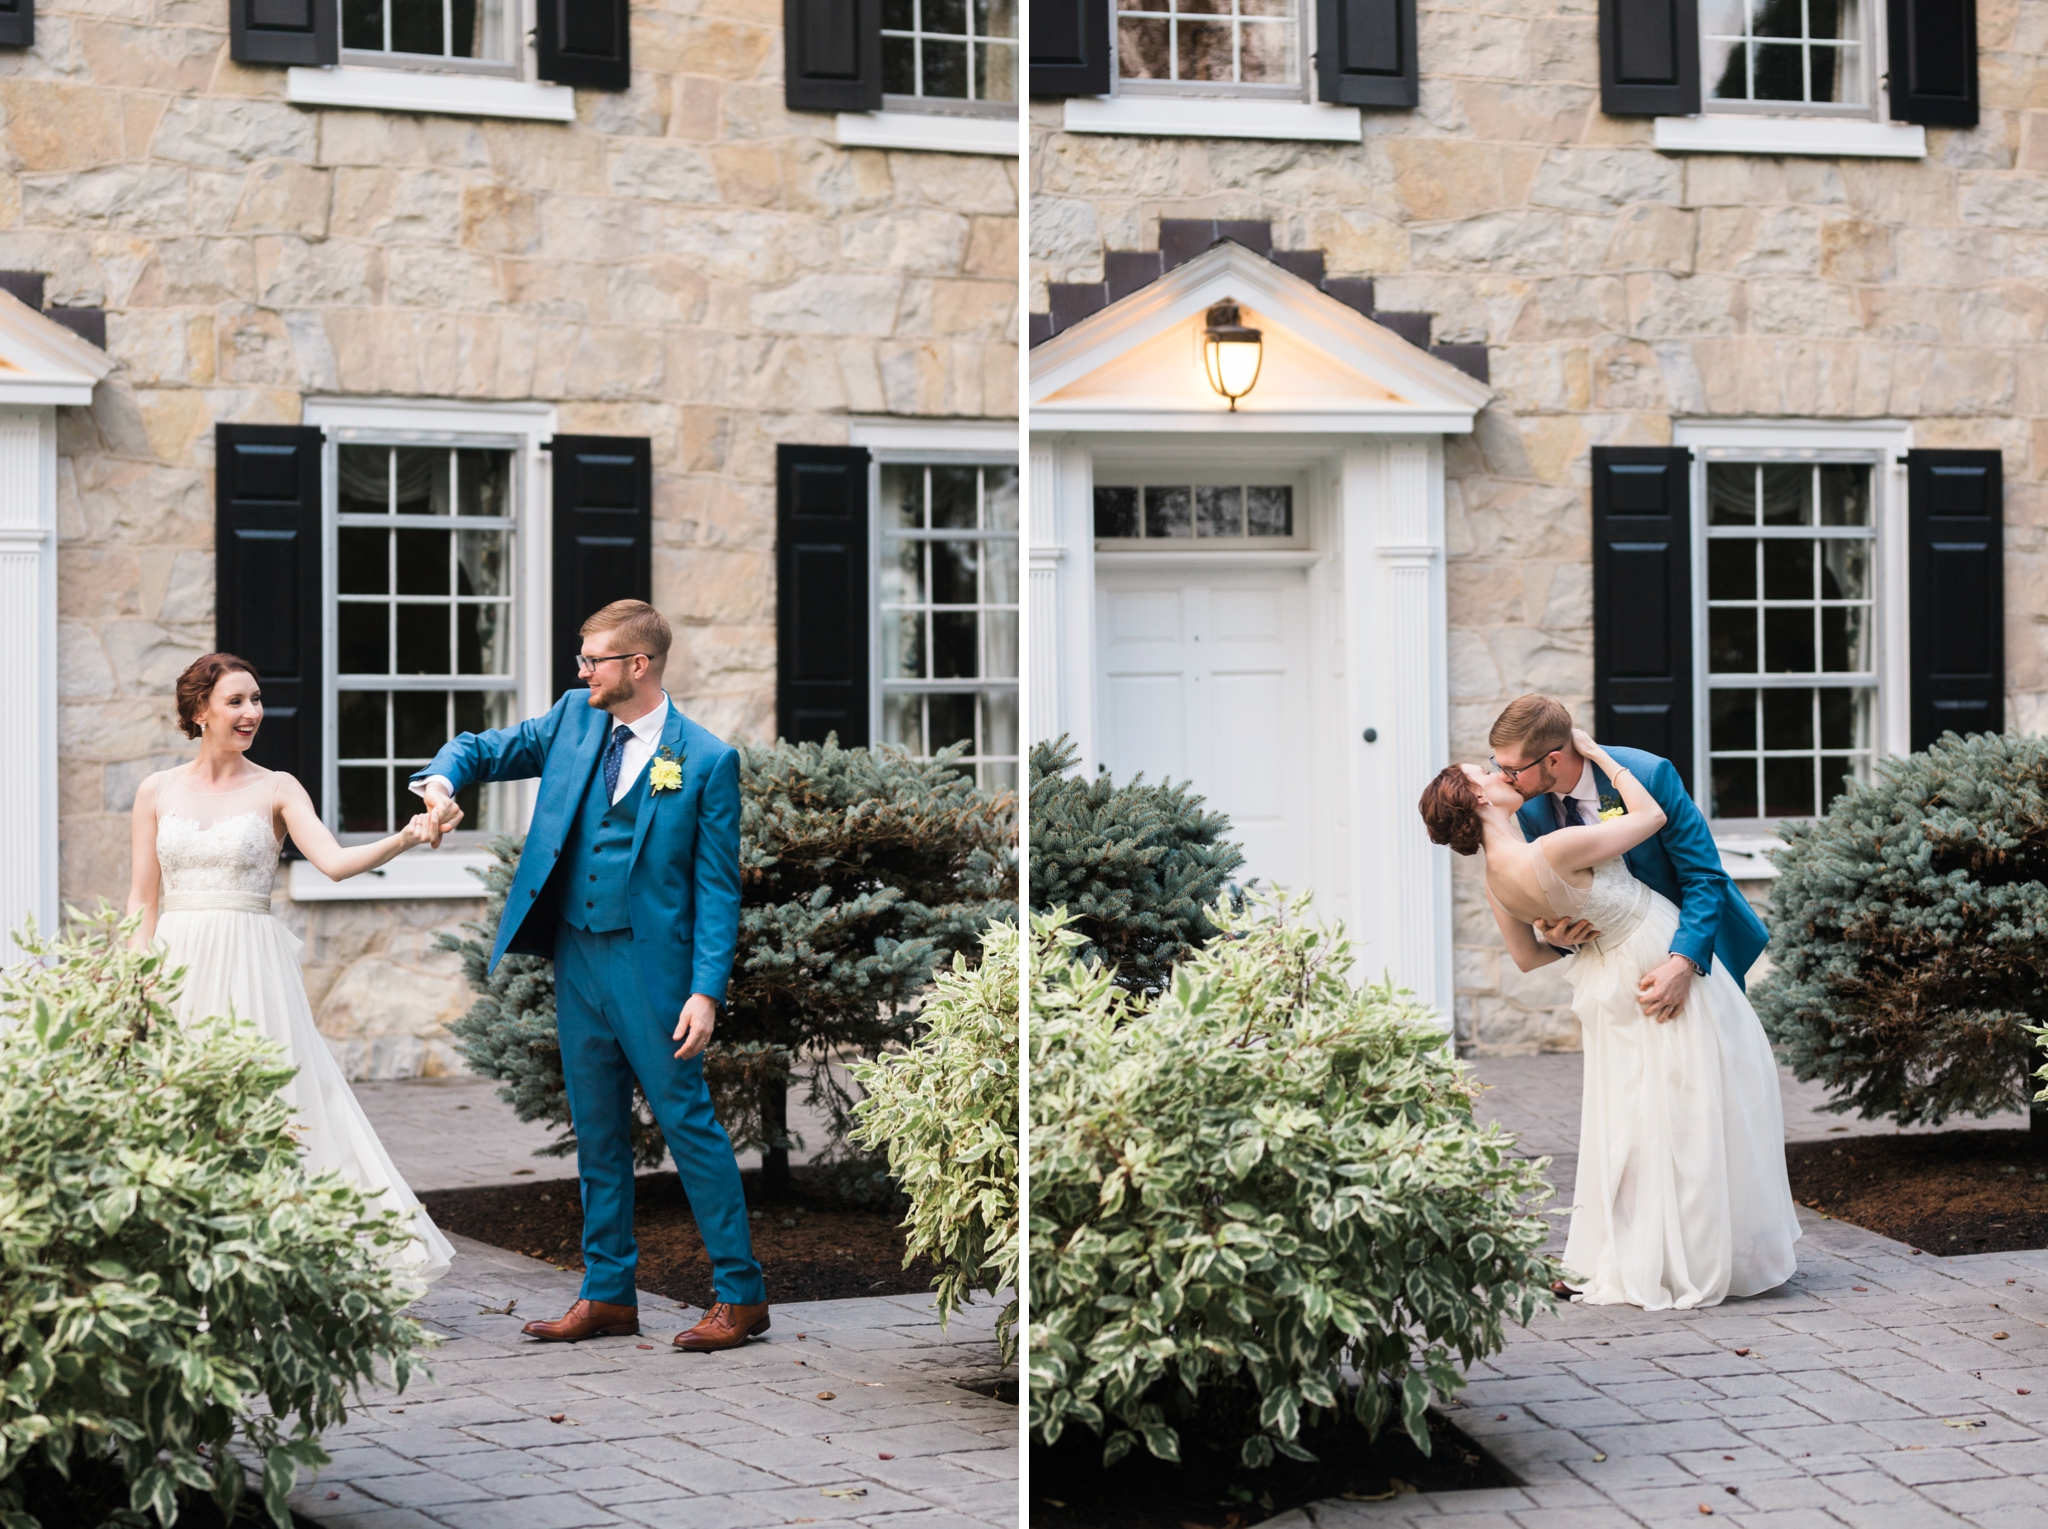 Emily Grace Photography, Lancaster PA Wedding Photographer, The Barn At Silverstone, Bicycle Theme Wedding